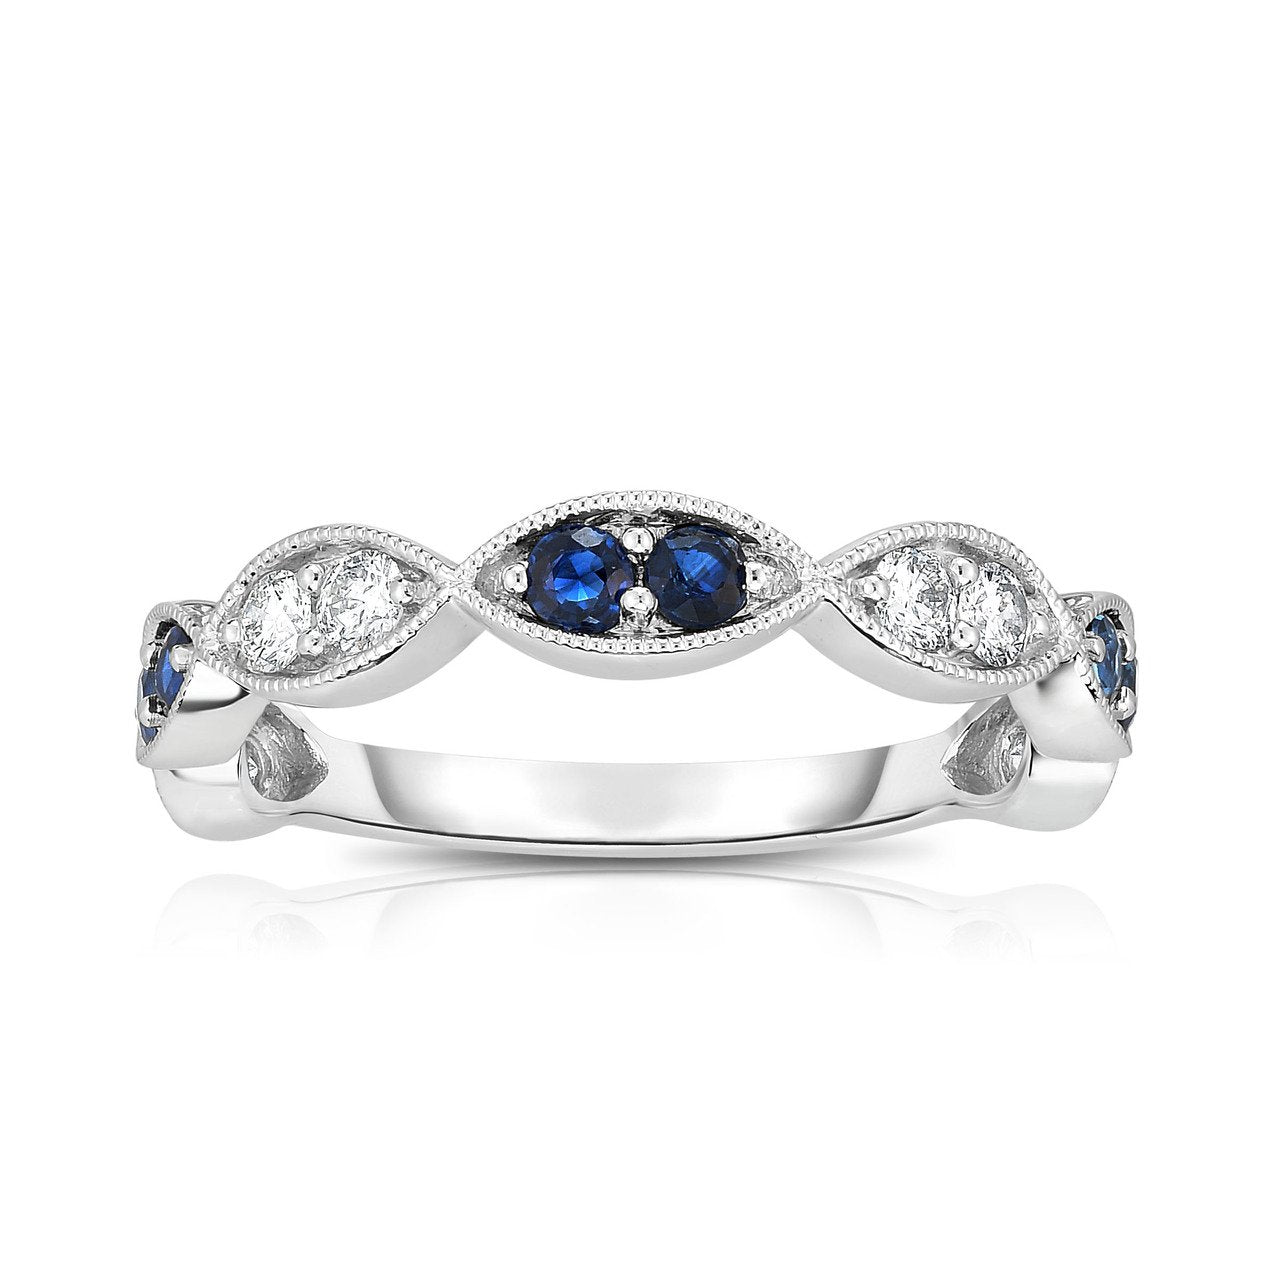 Sabel Collection 14K White Gold Sapphire and Diamond Marquise Accent Ring